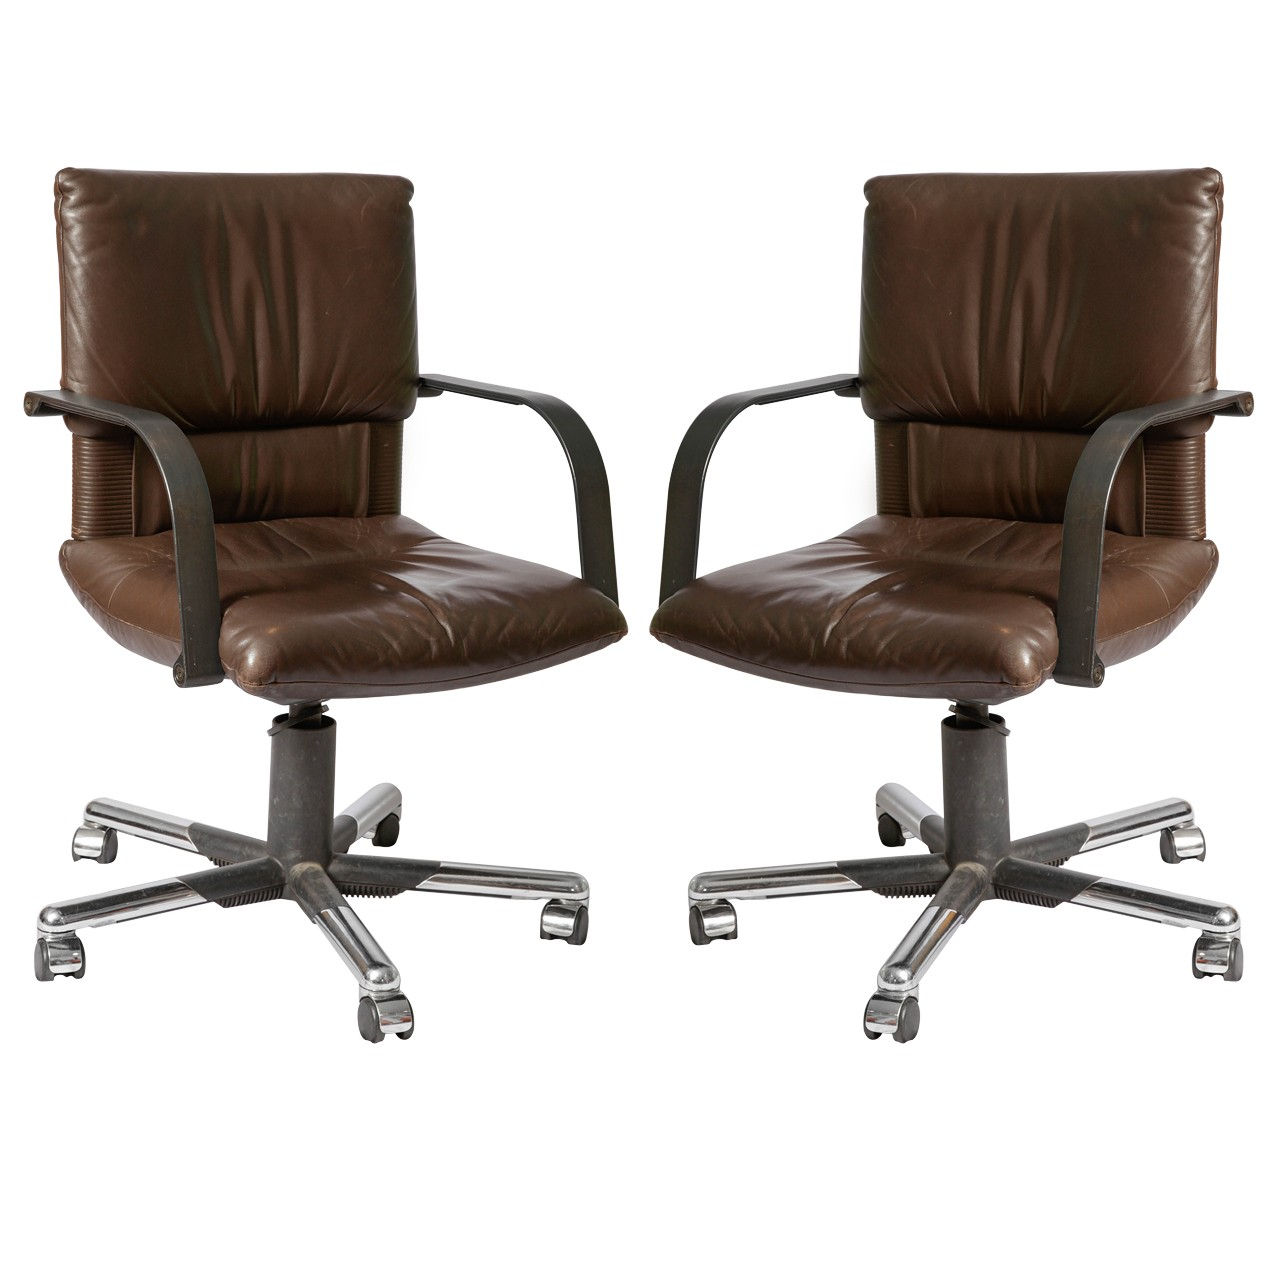 Swivel chairs by Mario Bellini for Vitra